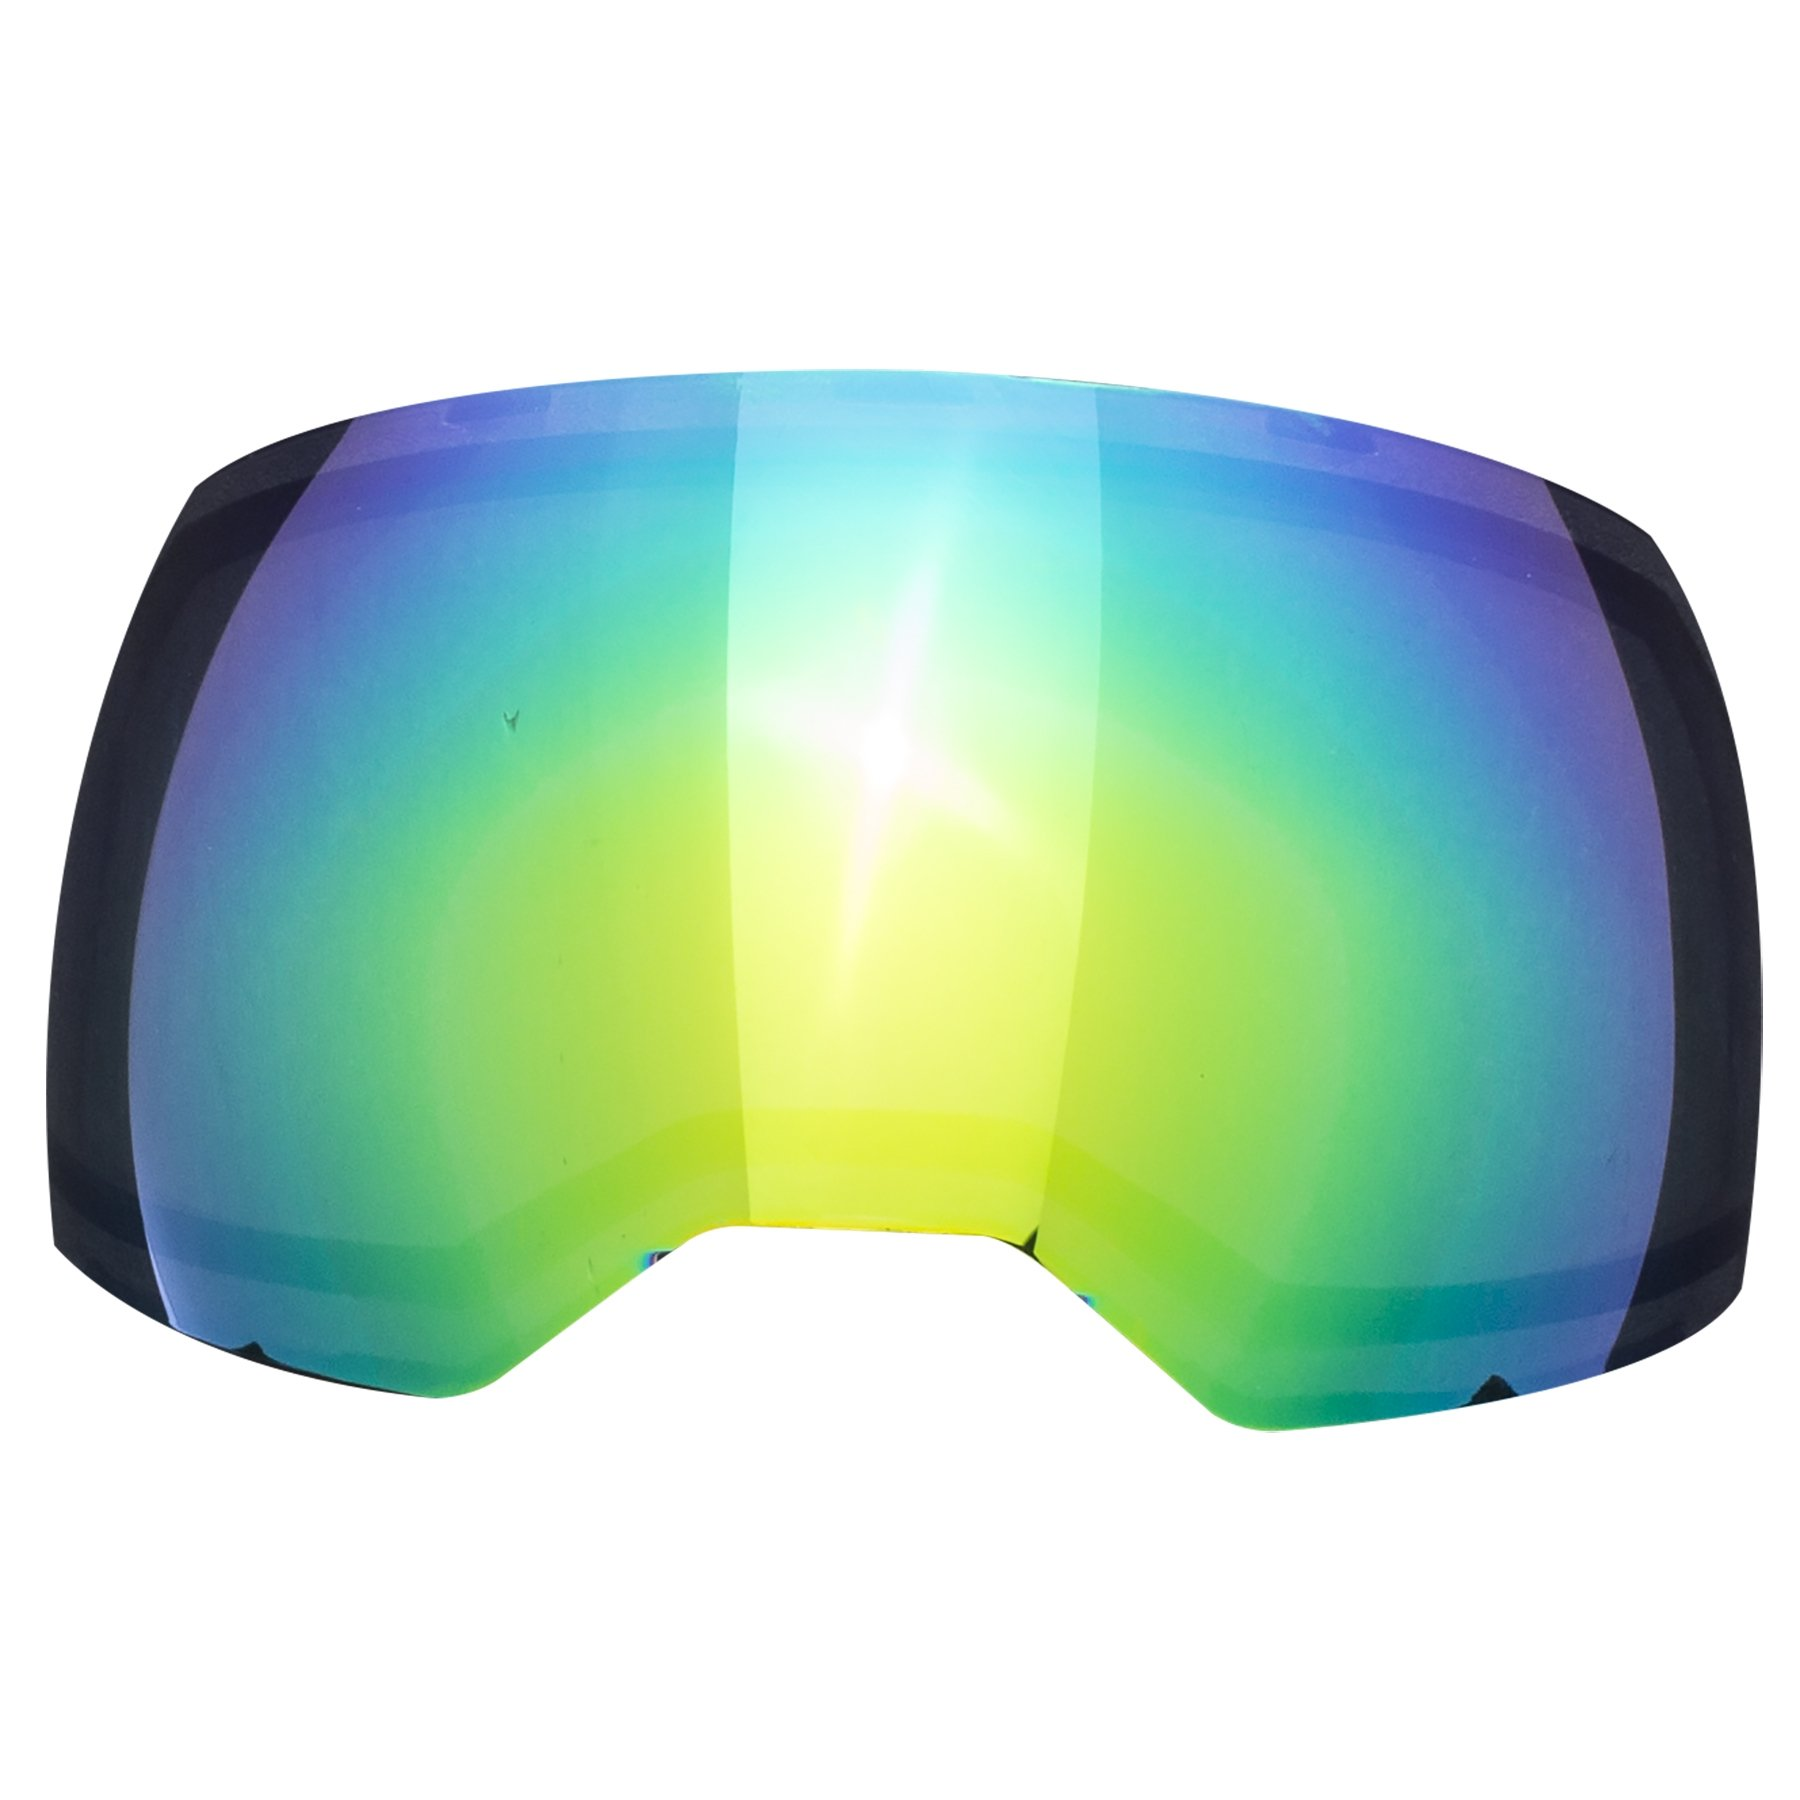 Empire EVS Thermal Goggle Lens - Green Mirror by Empire